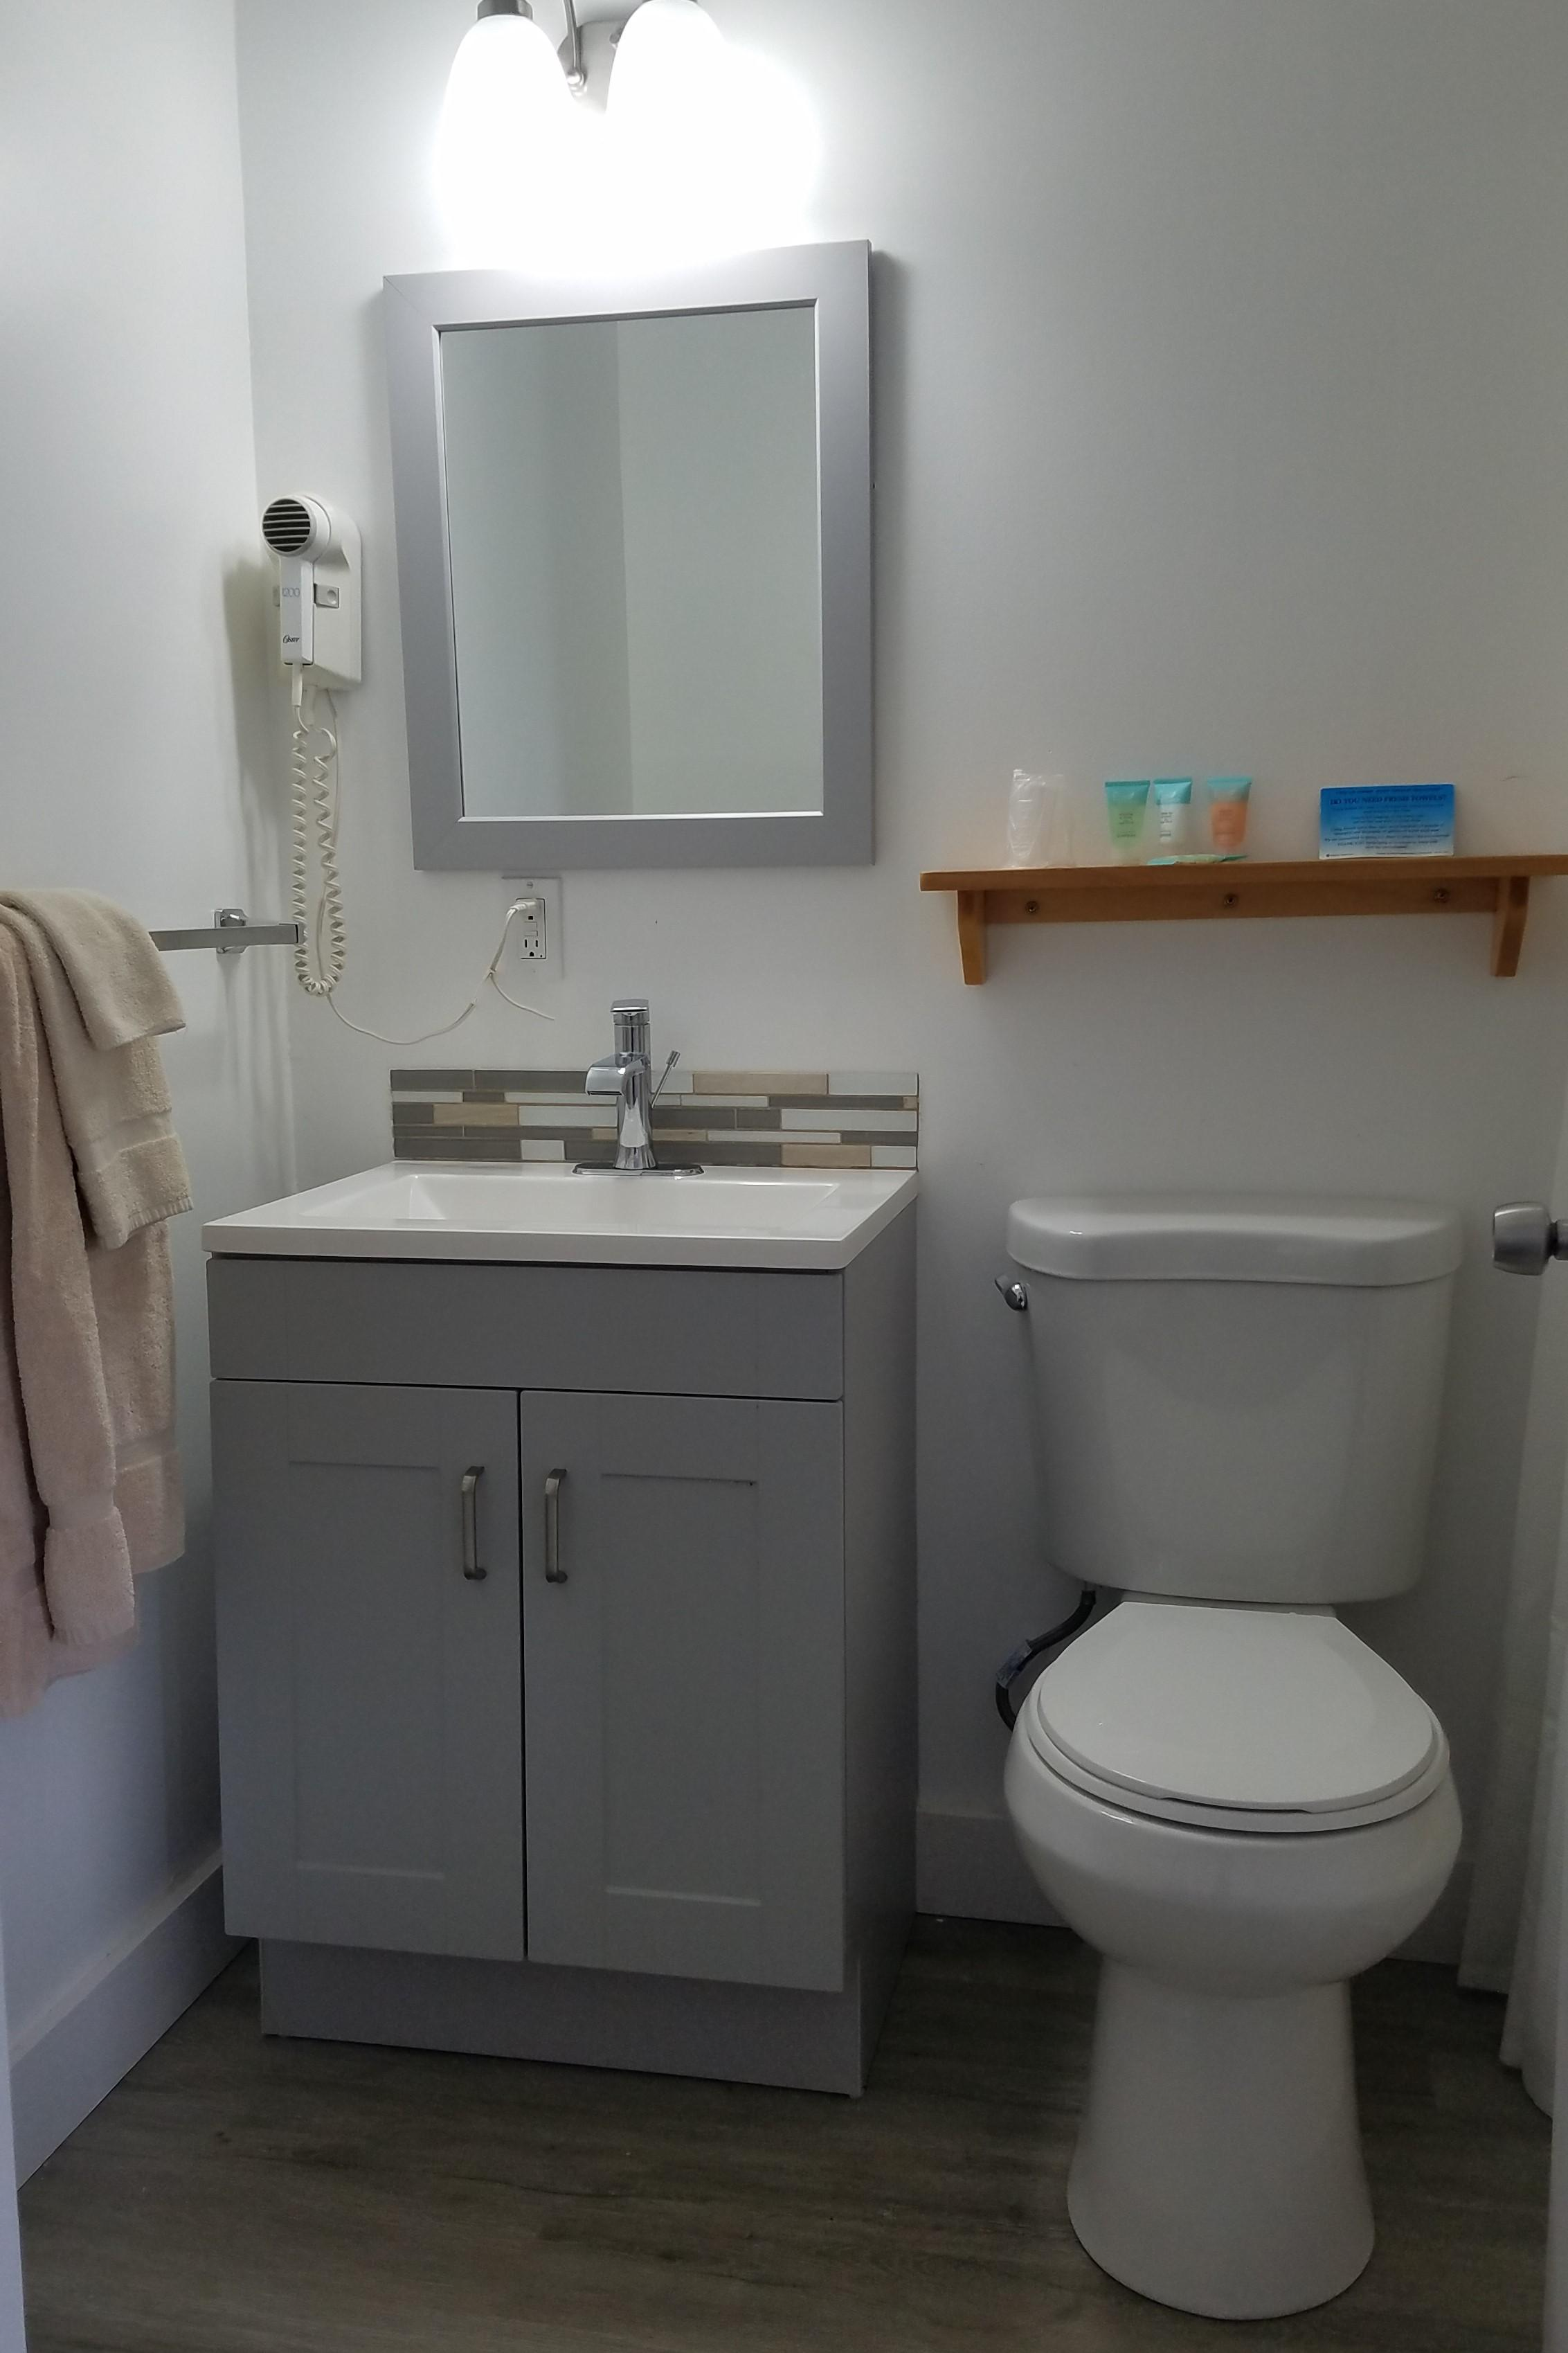 full bathrooms for lodging in acadia national park